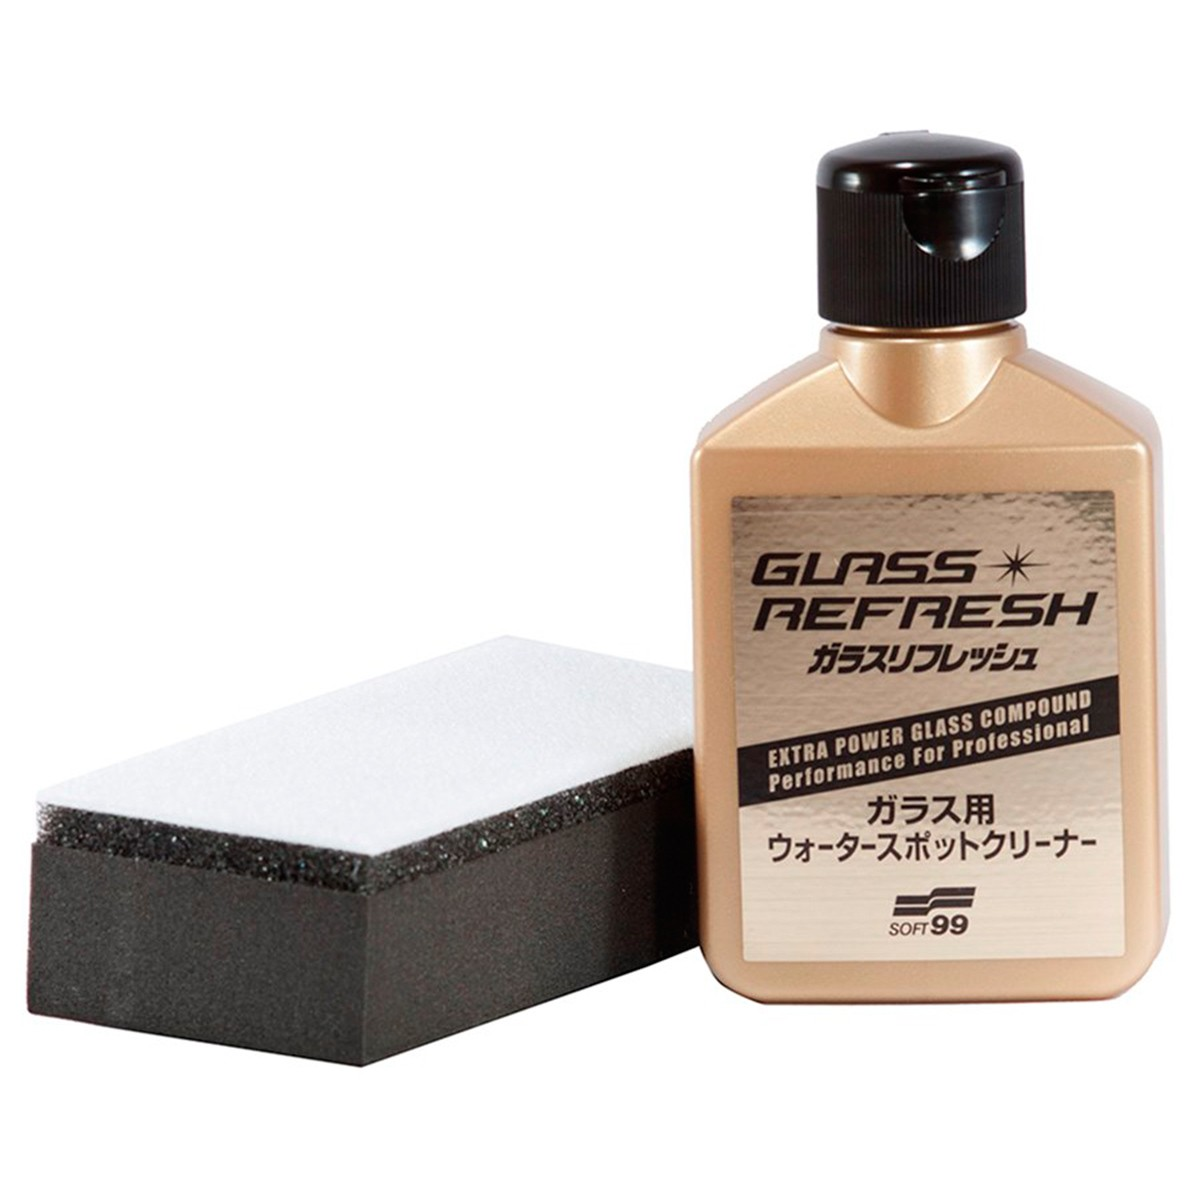 Glass Refresh Removedor de Manchas de Vidro 80ml - Soft99